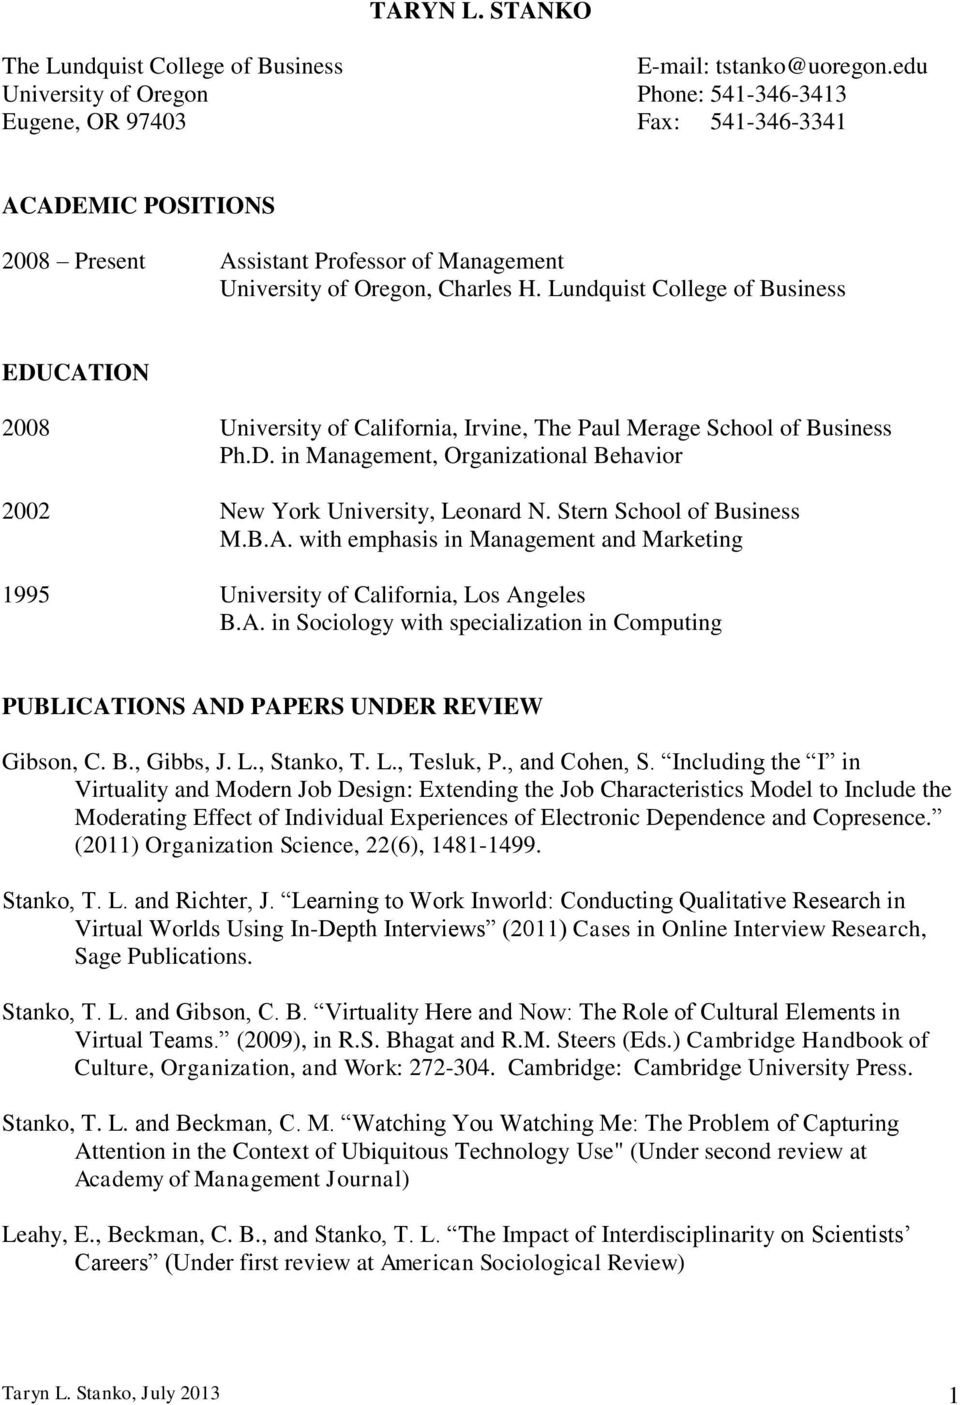 Lundquist College of Business EDUCATION 2008 University of California, Irvine, The Paul Merage School of Business Ph.D. in Management, Organizational Behavior 2002 New York University, Leonard N.